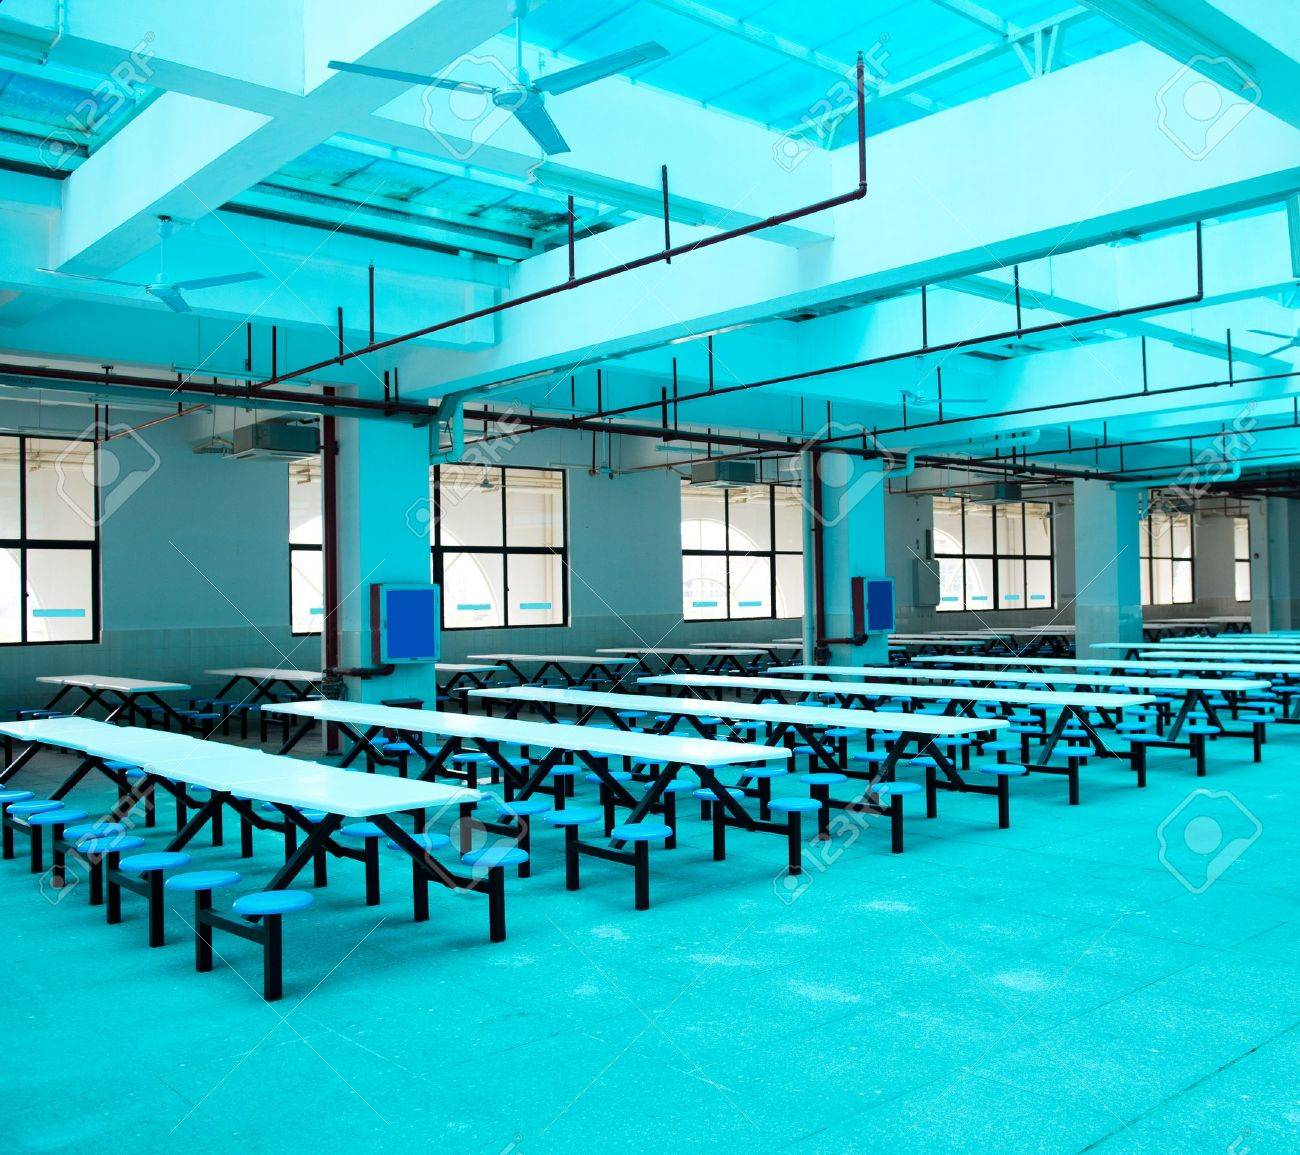 Clean cafeteria tables - Clean School Cafeteria With Many Empty Seats And Tables Stock Photo 17828526